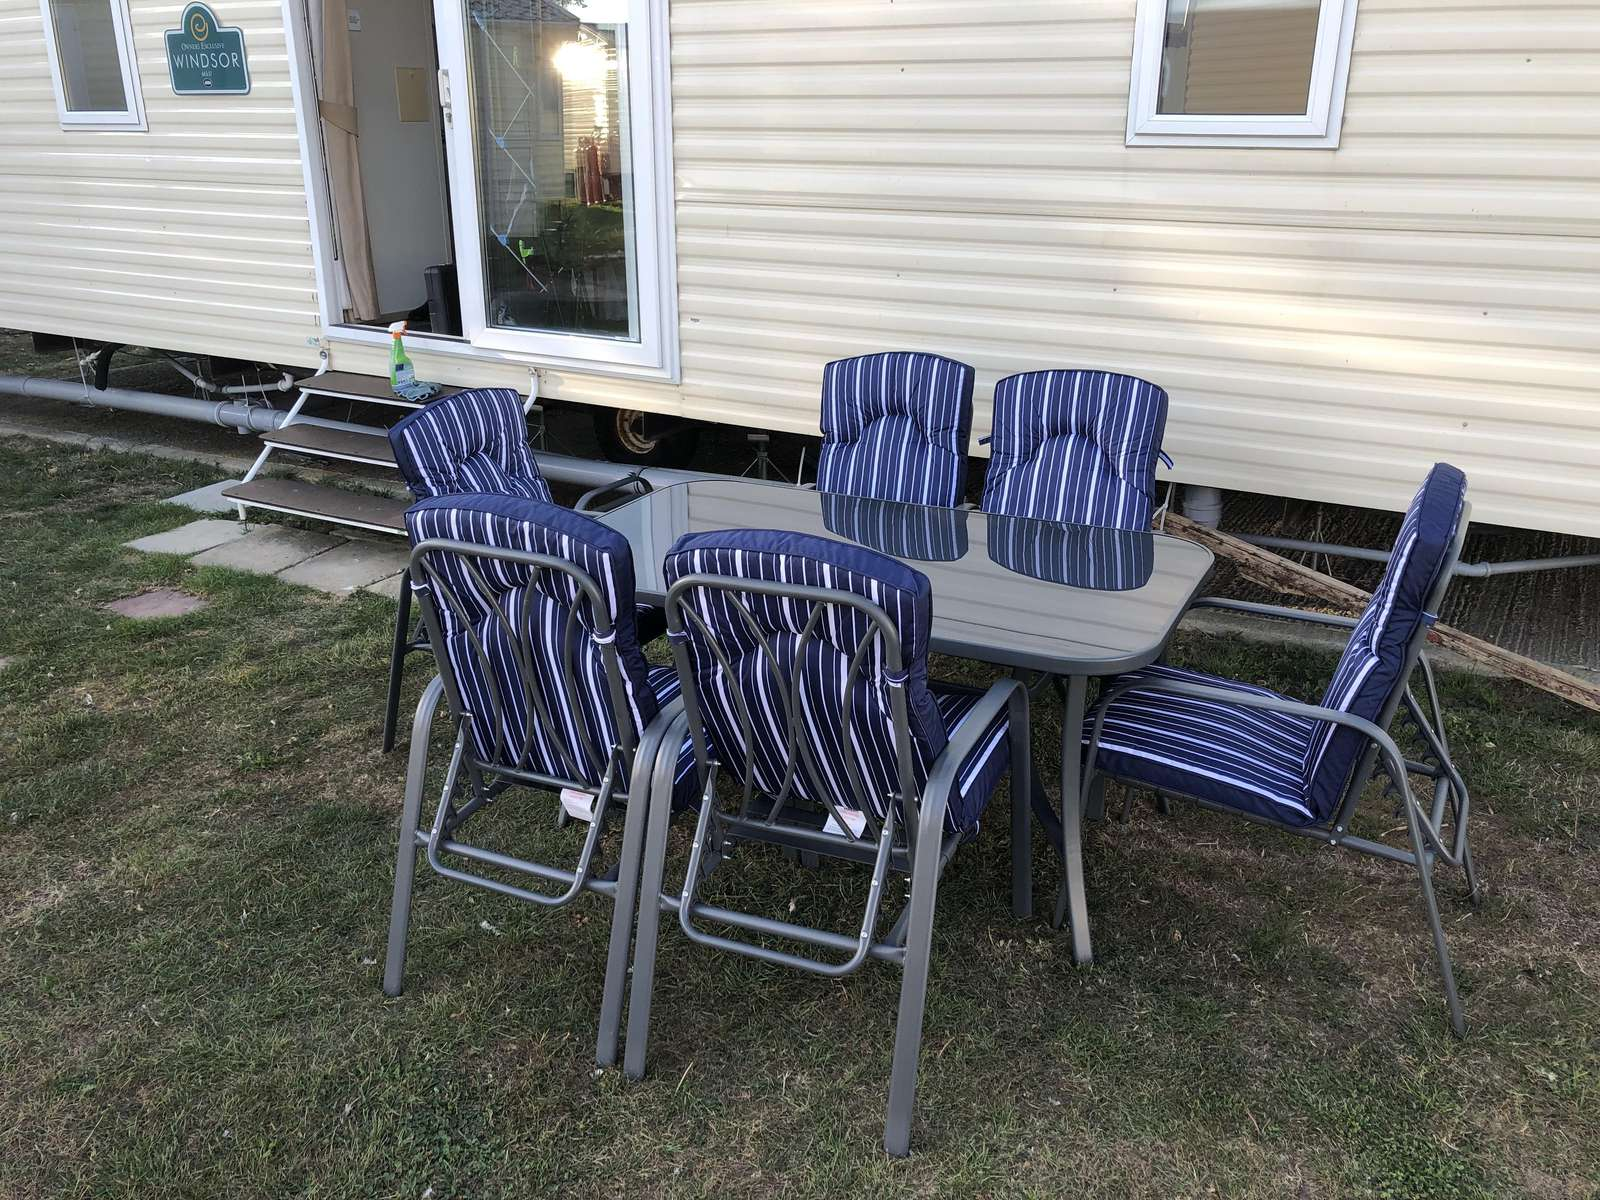 So many families have enjoyed their stay at Seawick Holiday Park!